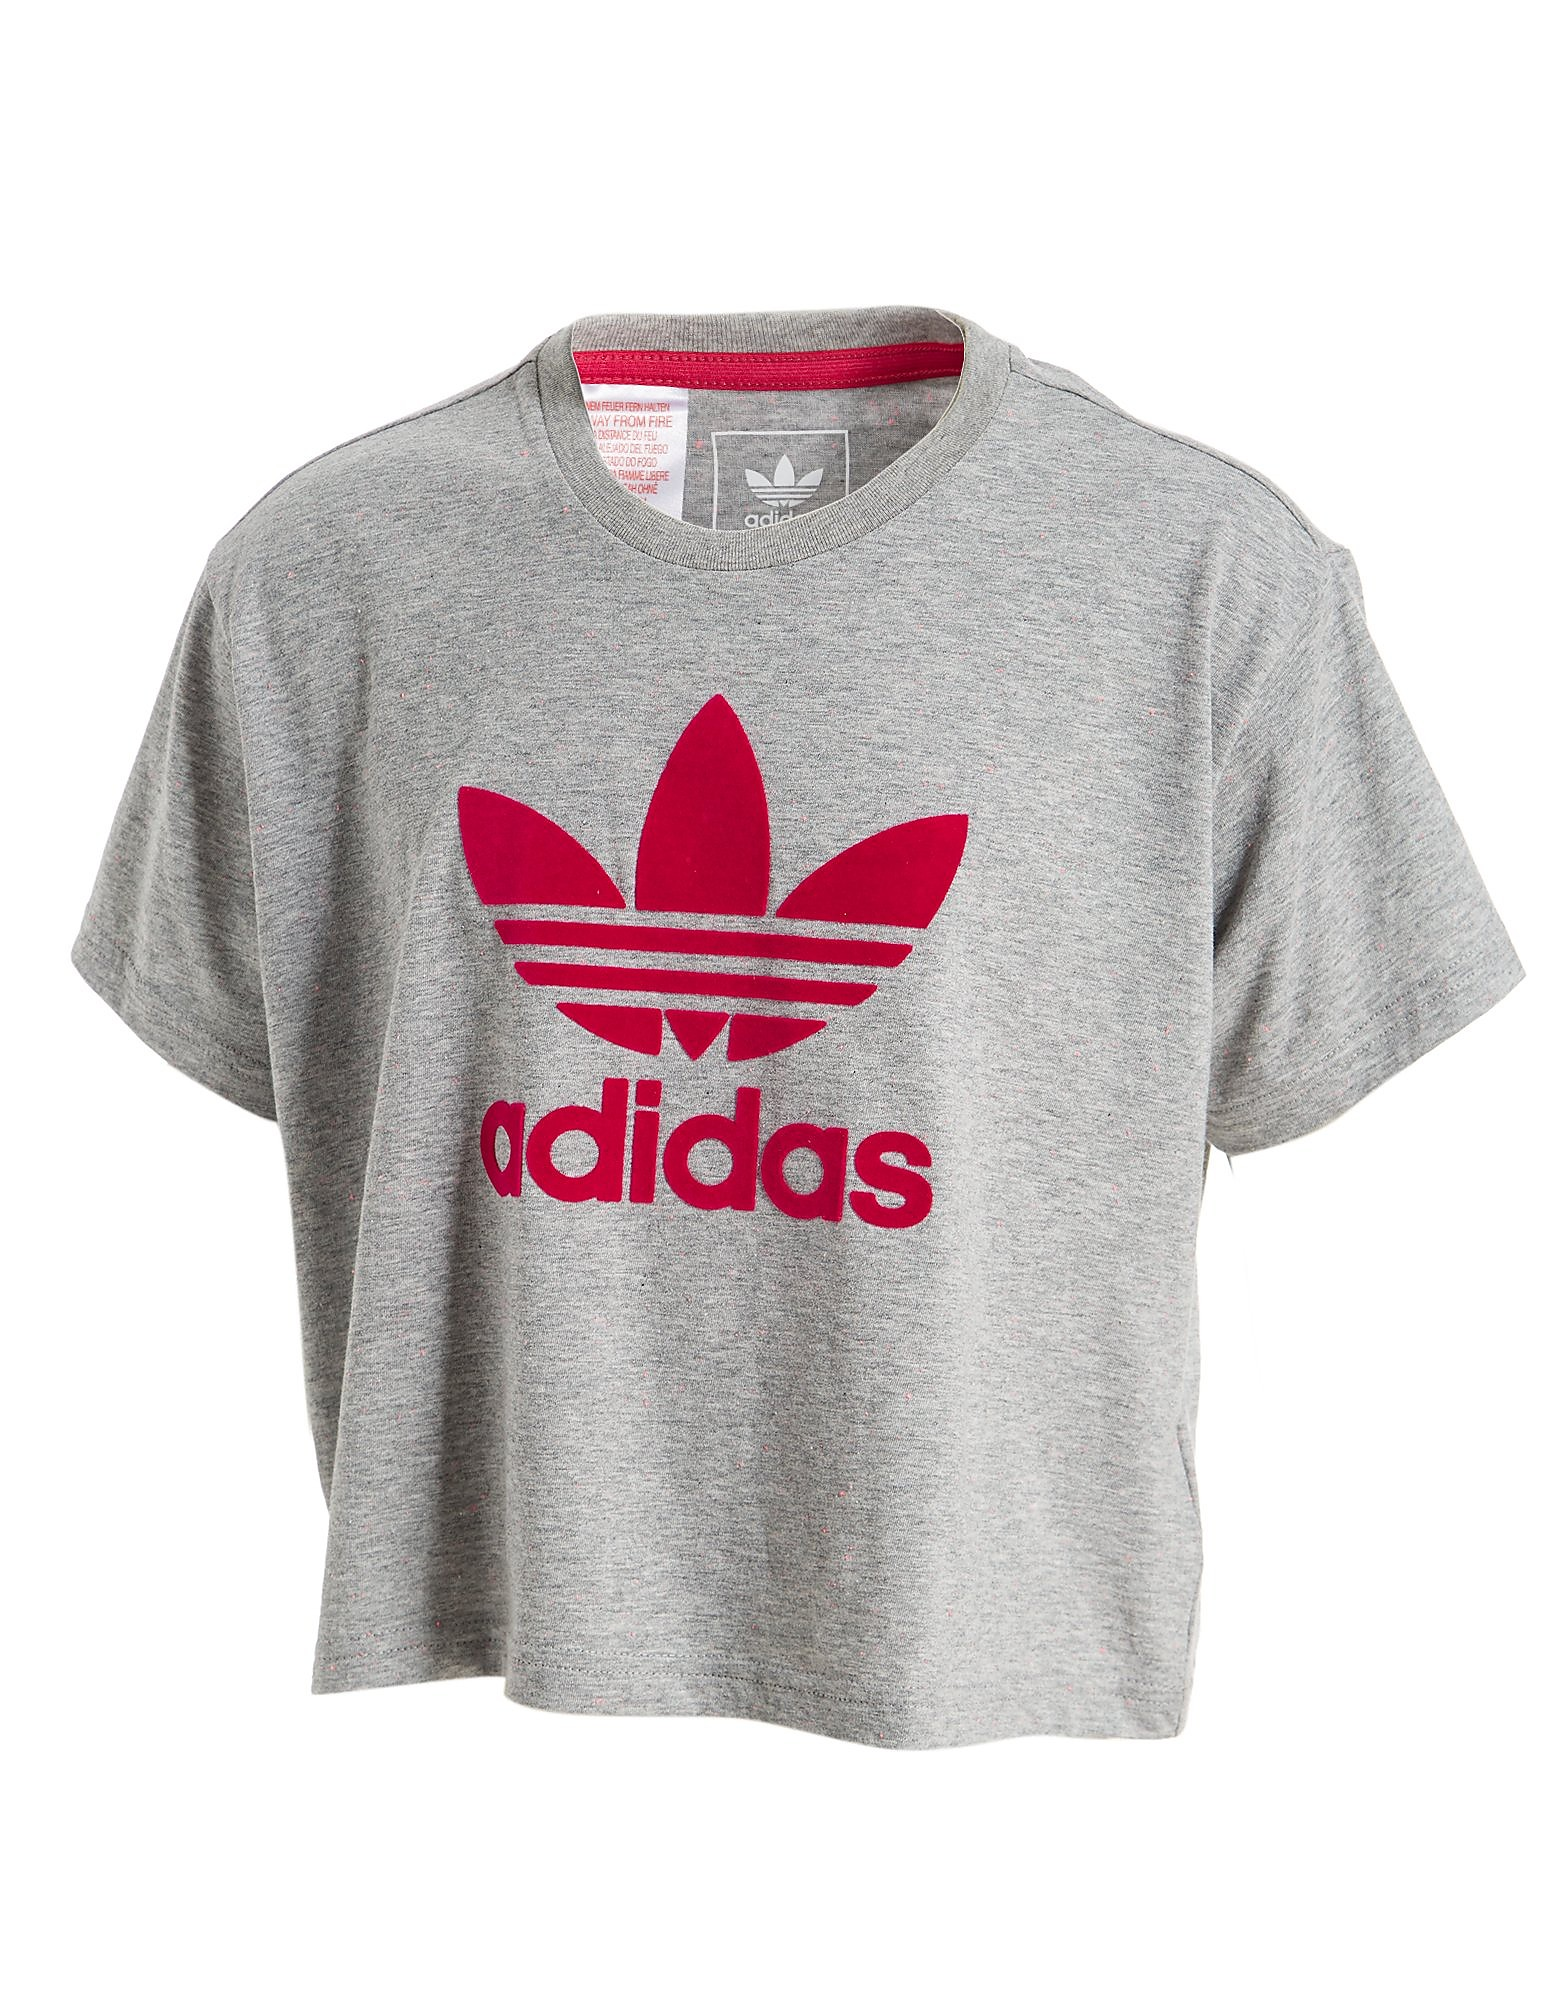 adidas Originals Girls' Crop T-Shirt Junior